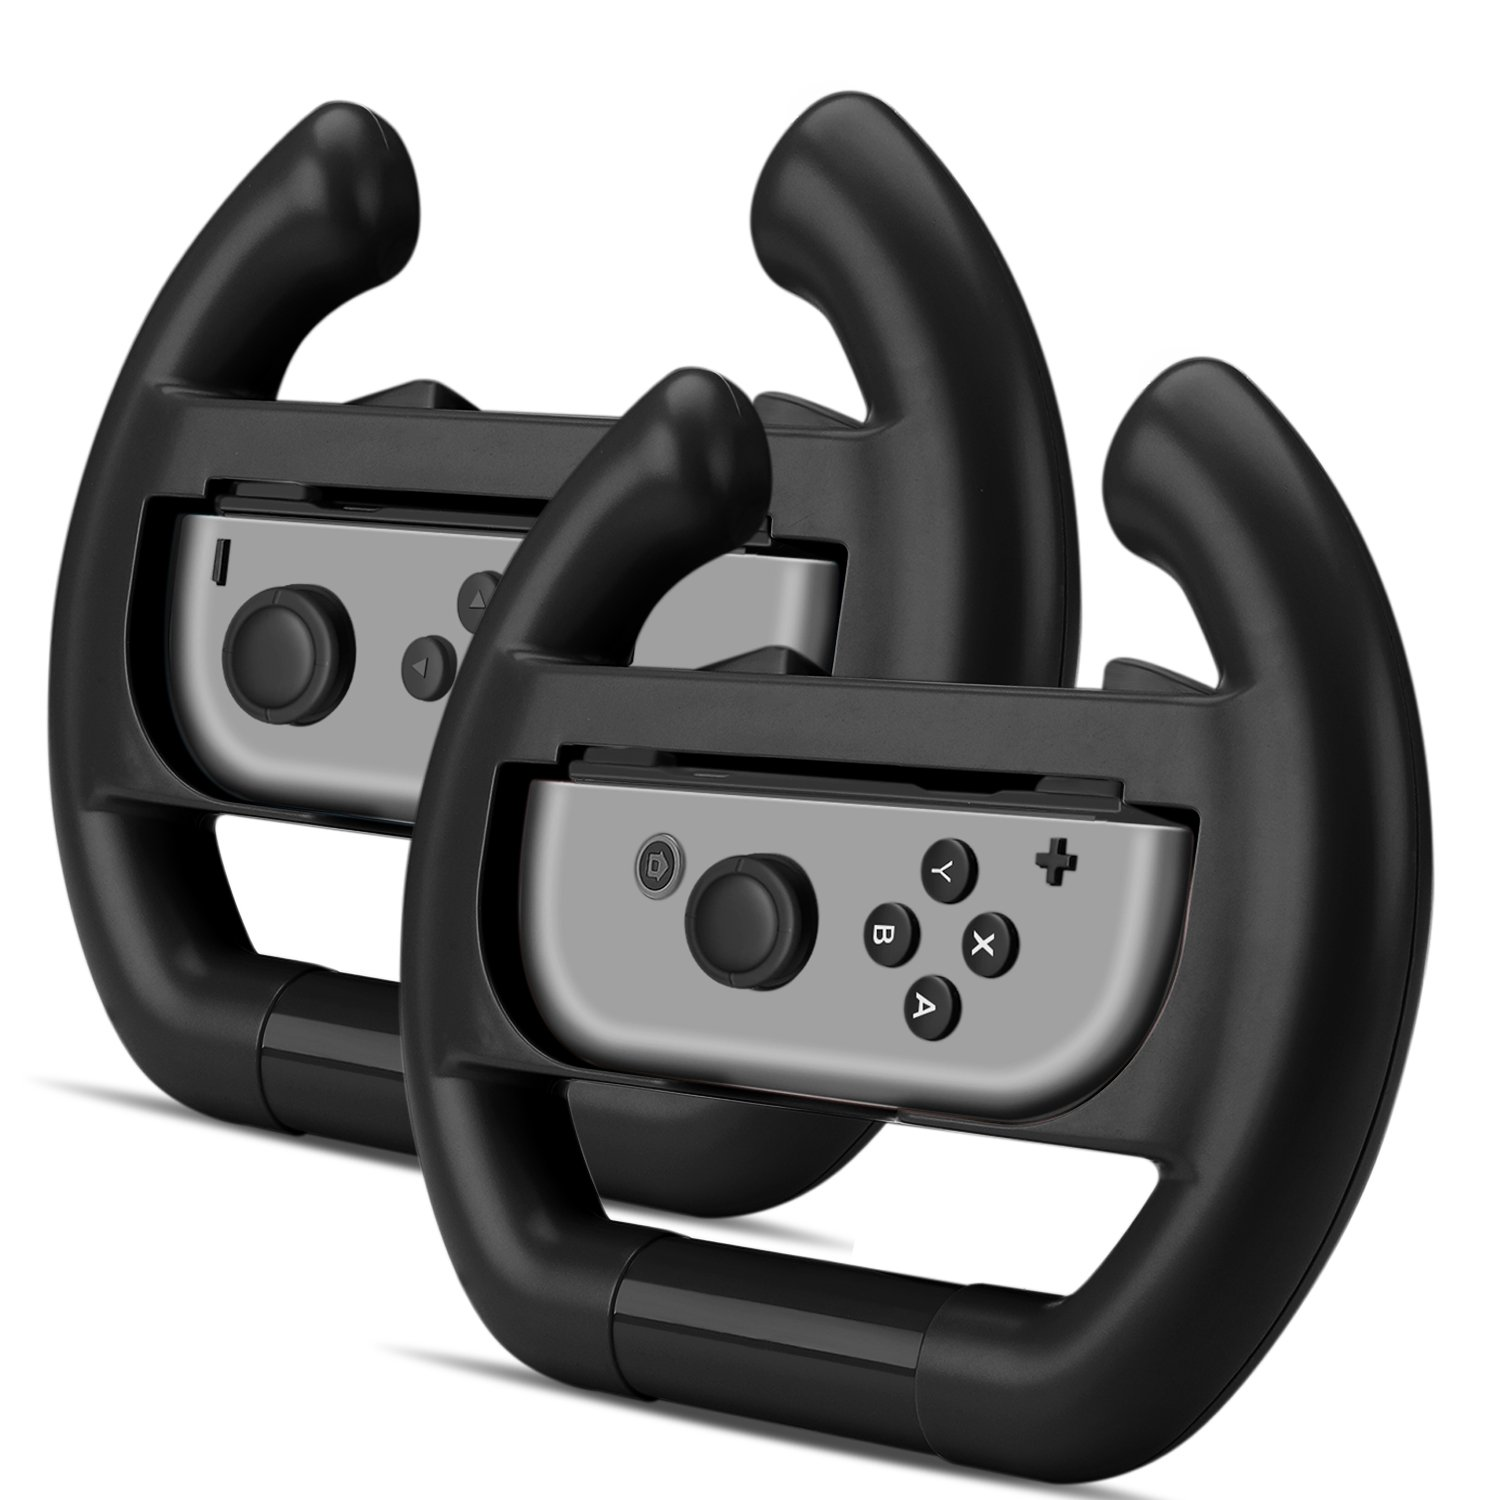 TNP Joy-Con Wheel Controller for Nintendo Switch(Set of 2) - Racing Steering Wheel Controller Accessory Grip Handle Kit Attachment (Black) - Nintendo Switch by TNP Products